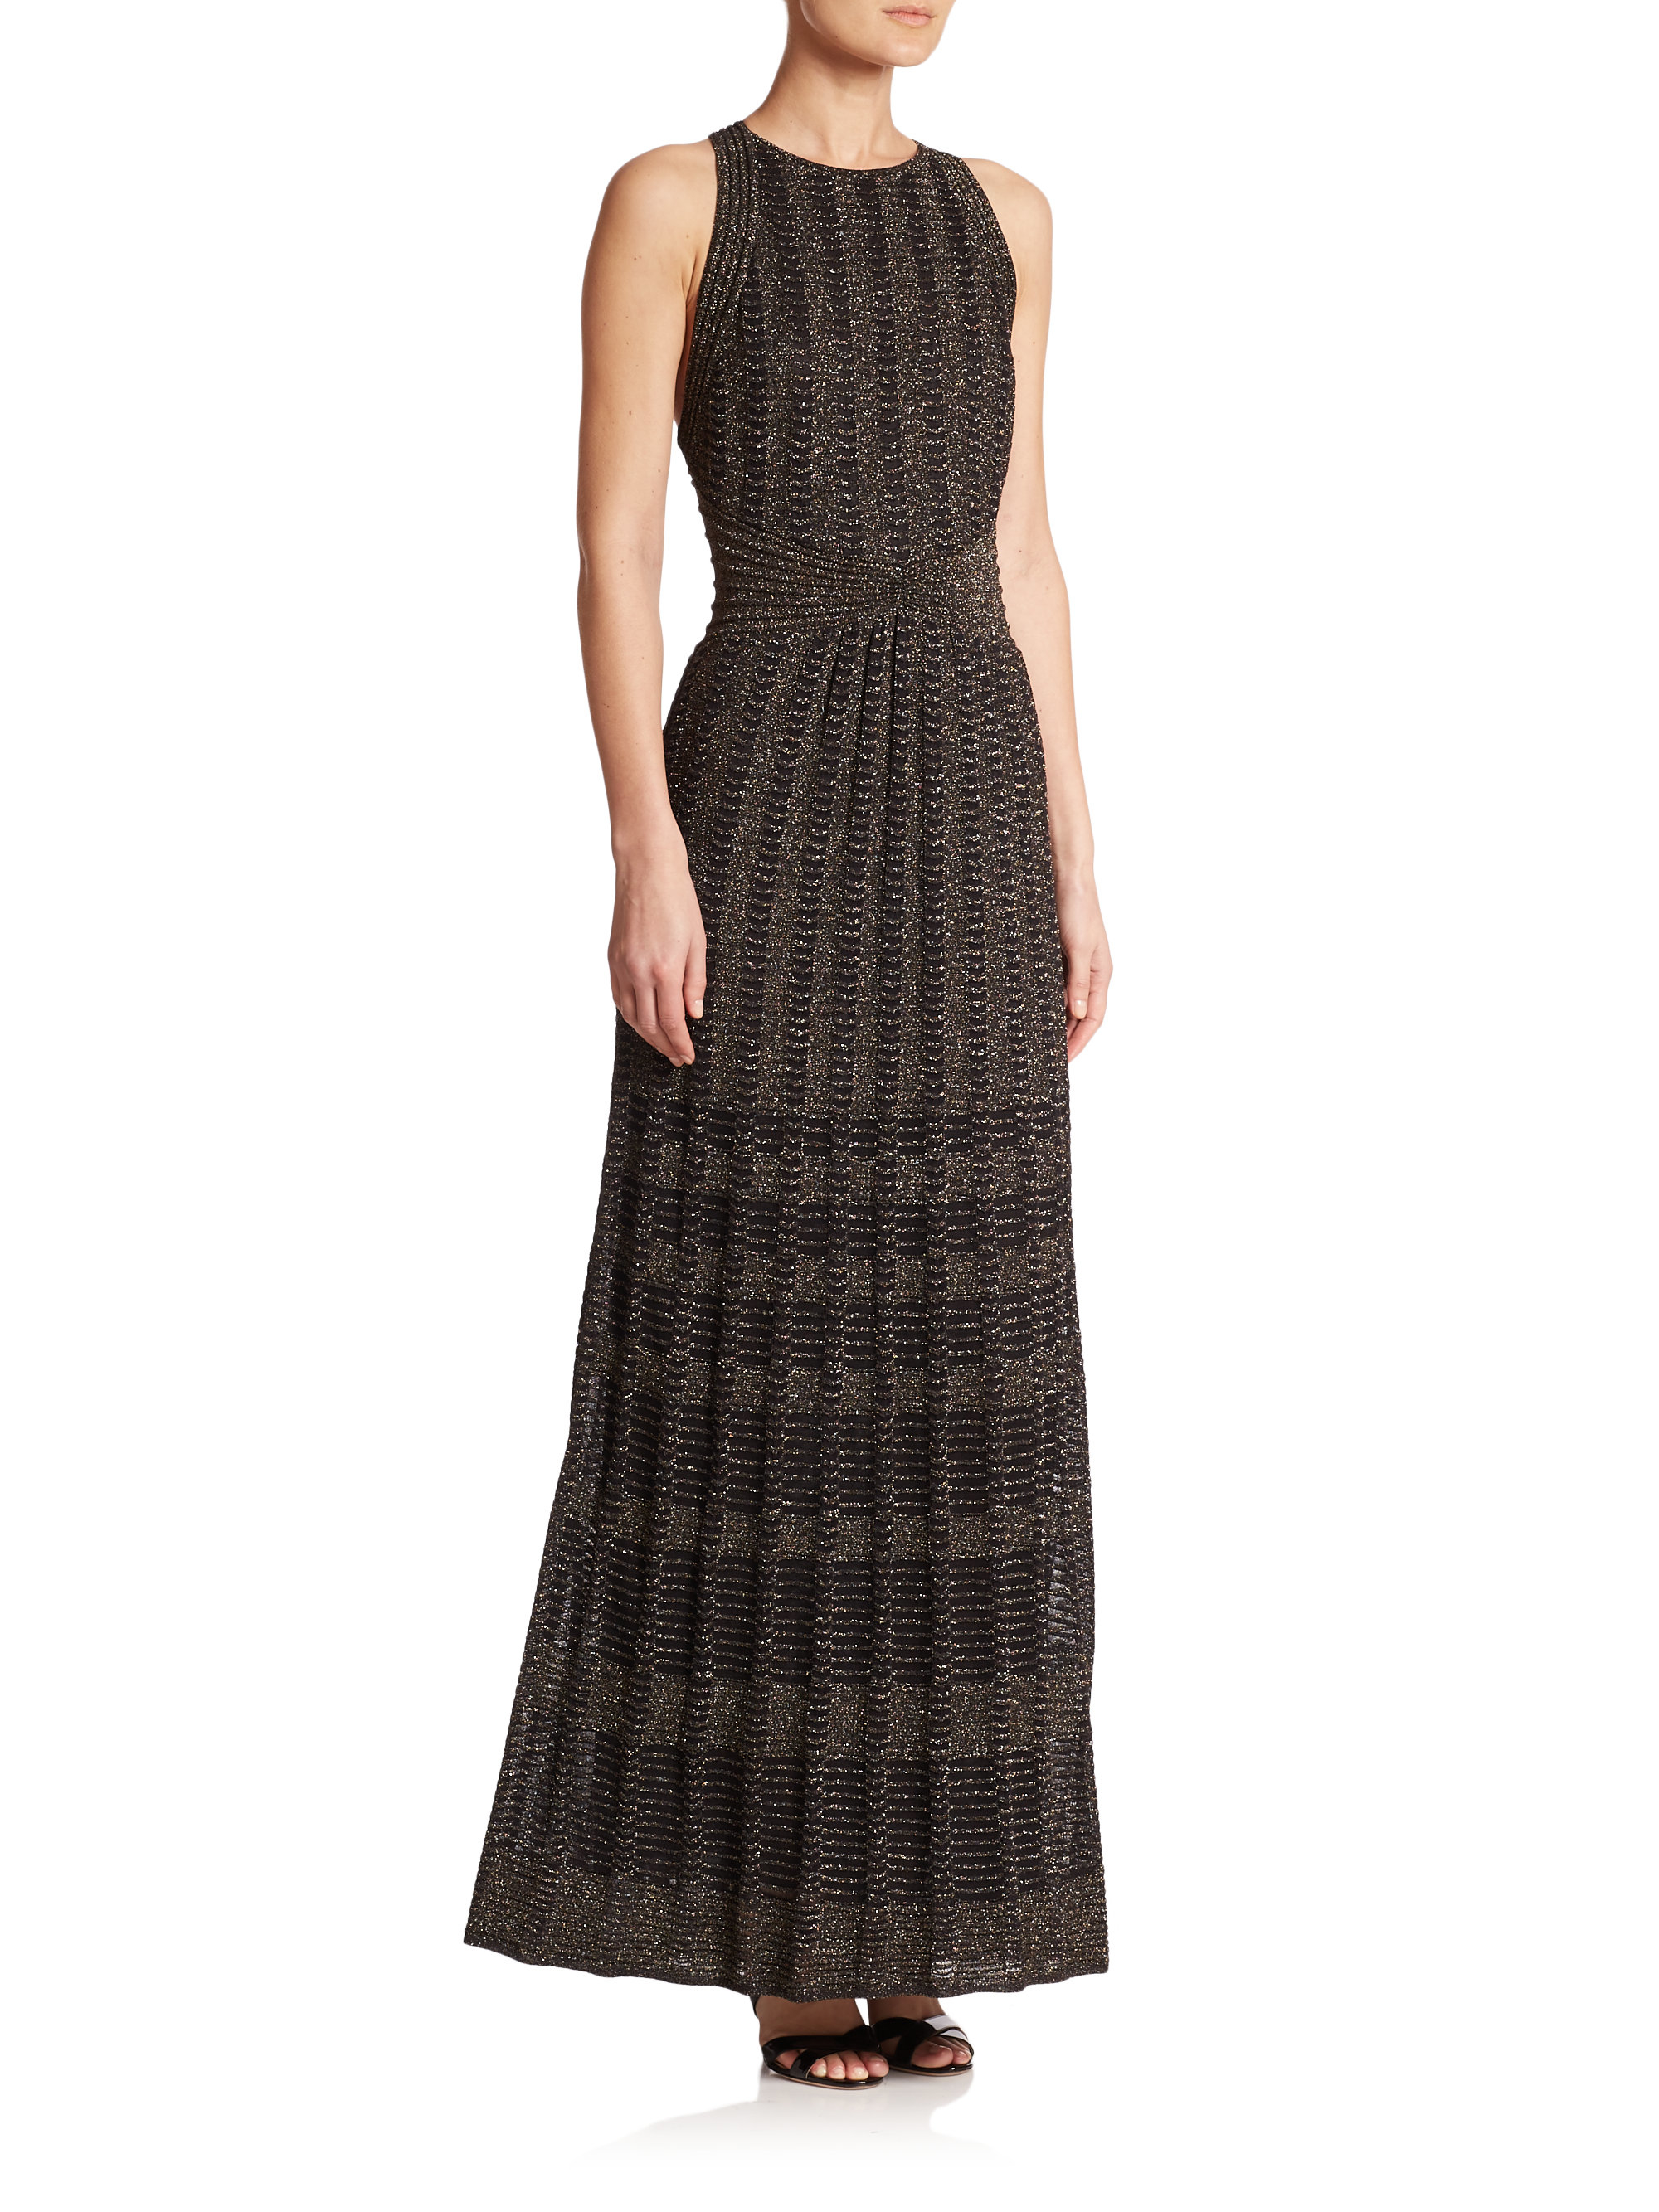 M missoni Metallic Knit Maxi Dress in Black | Lyst